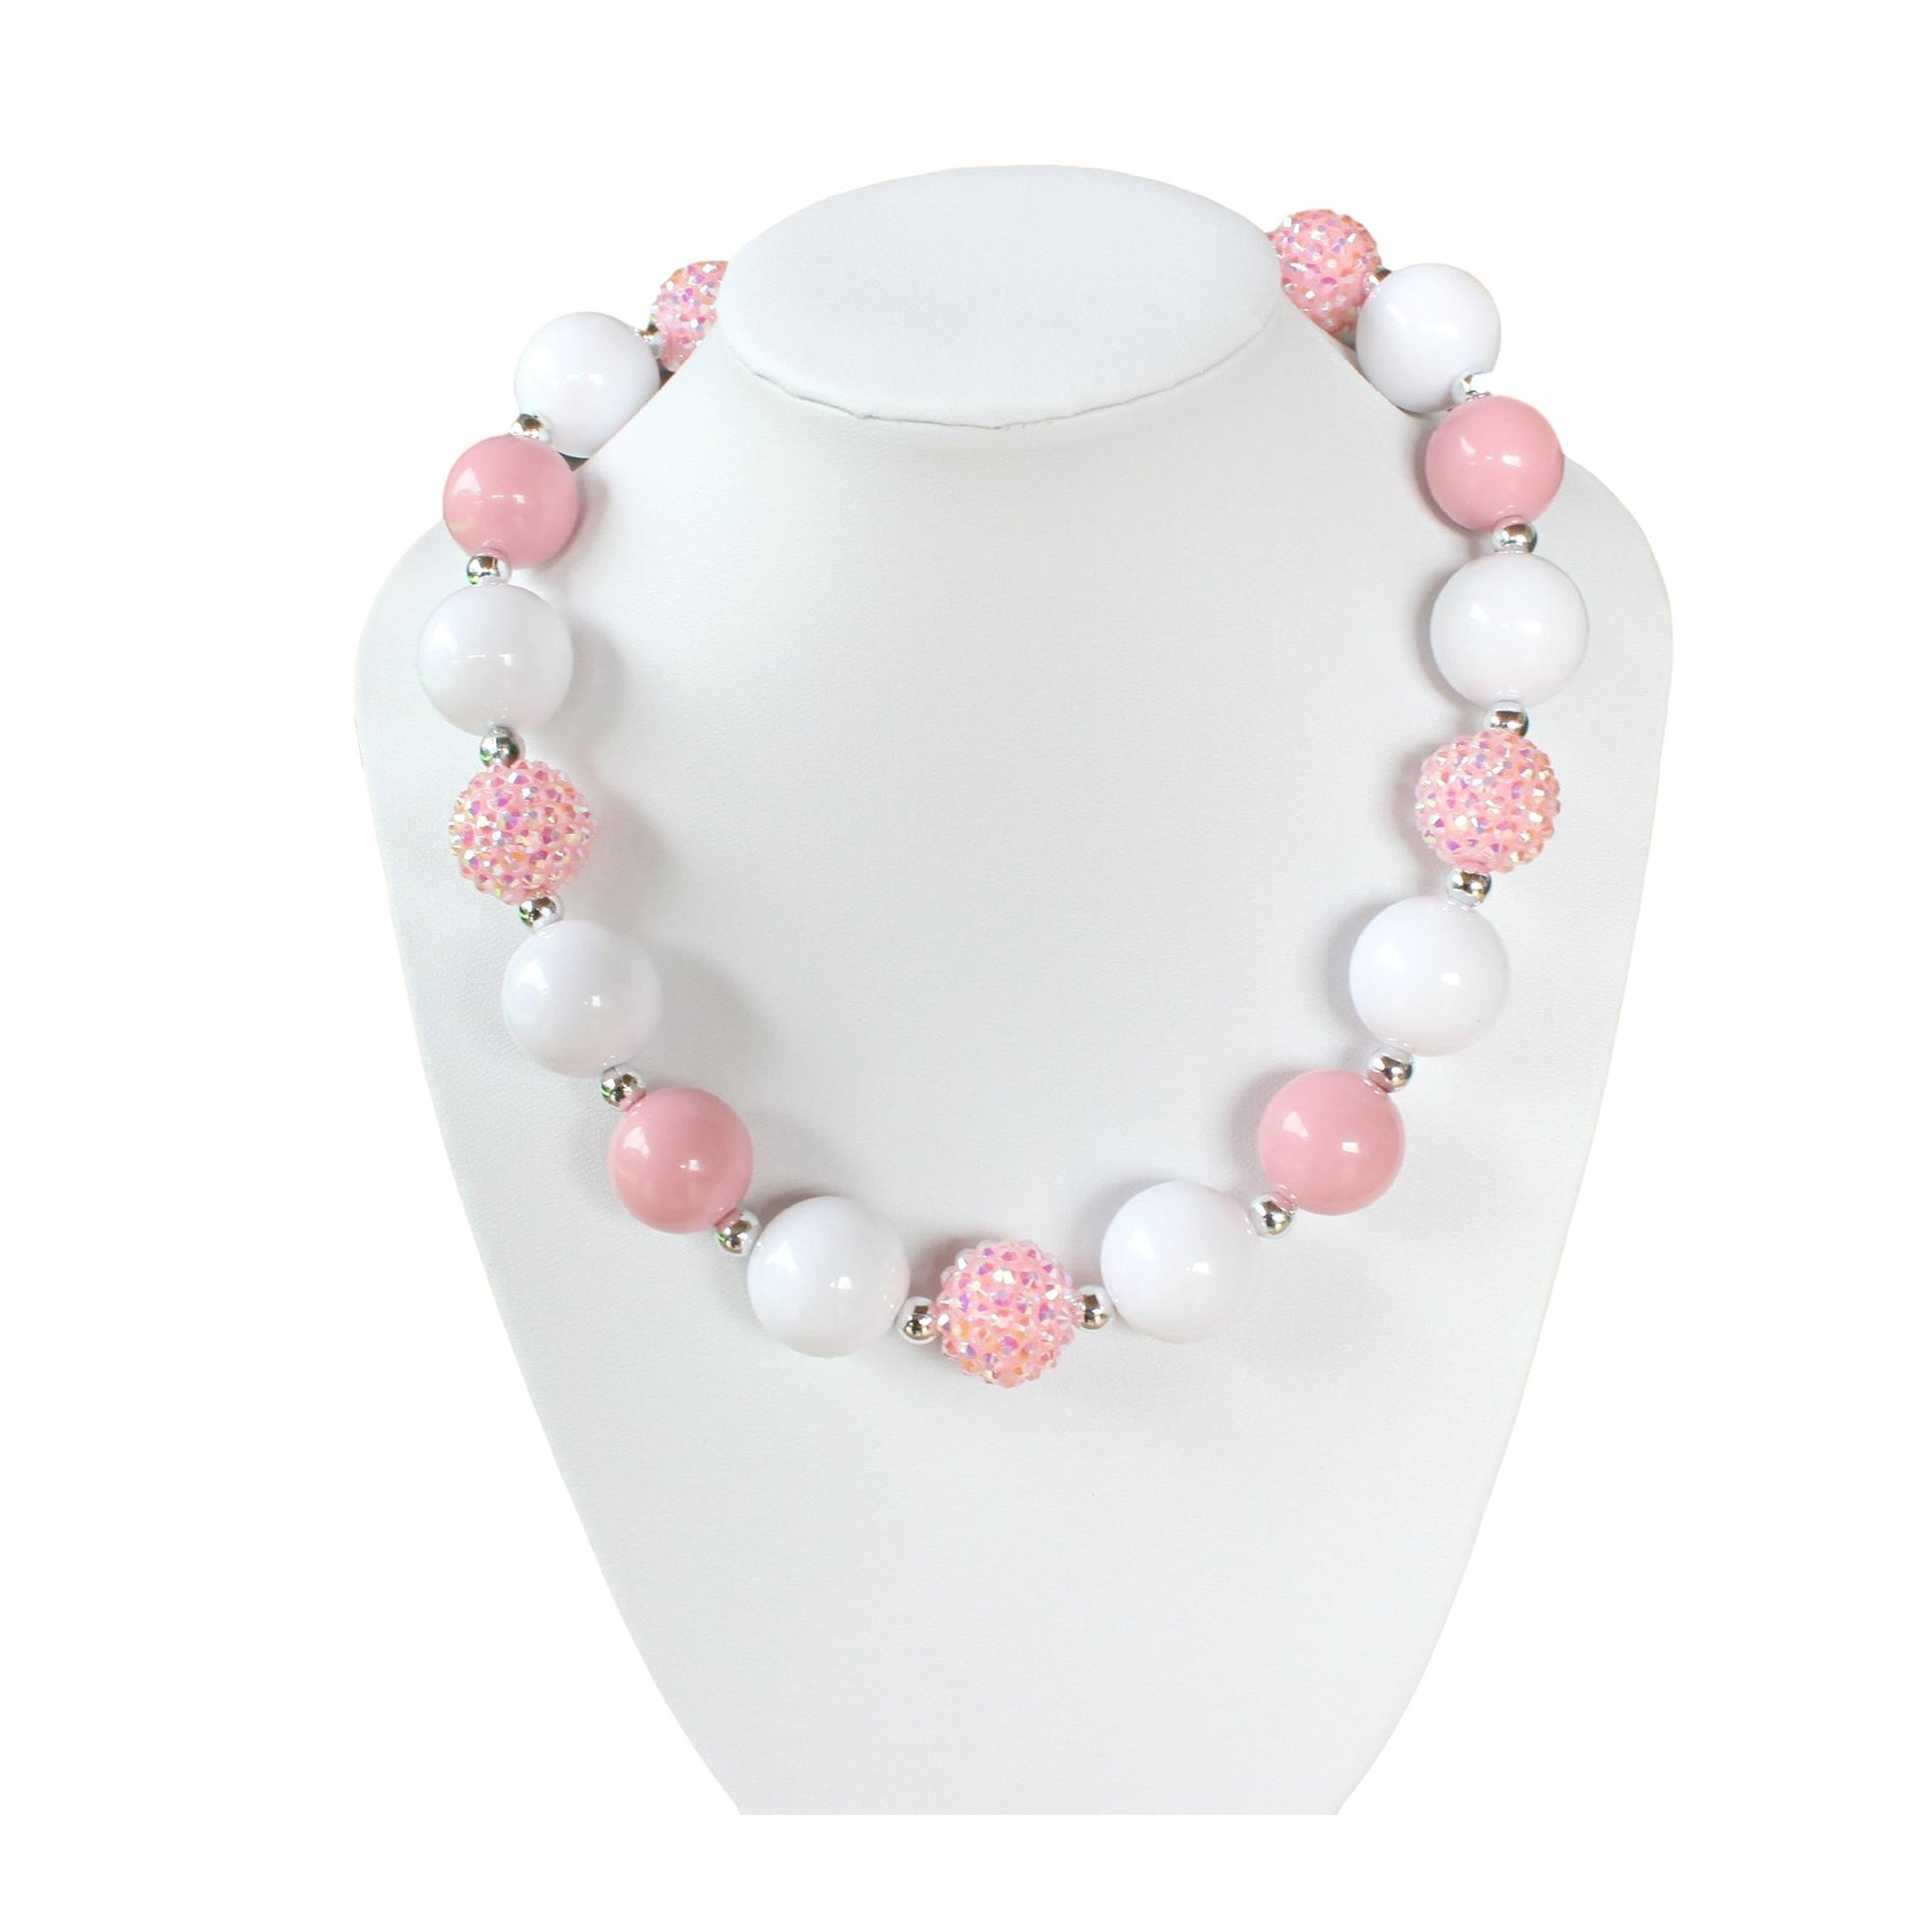 Chunky Bubble Gum Necklace for young girls and toddlers